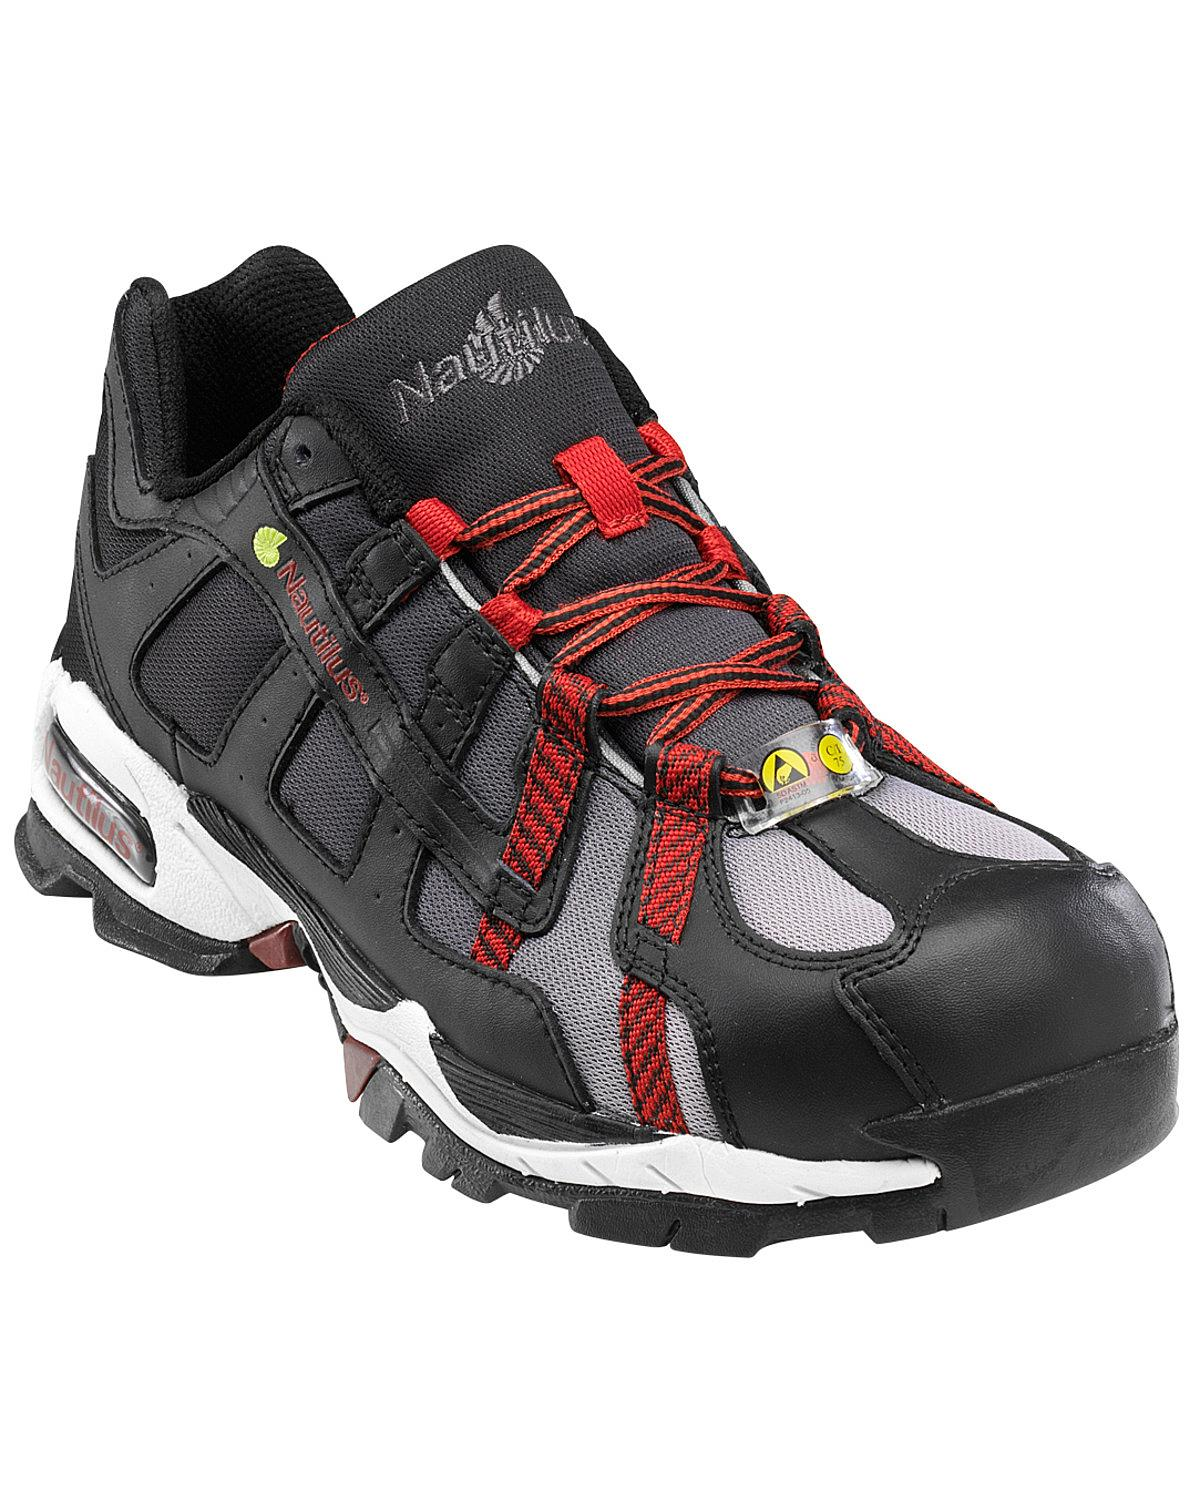 Nautilus Men's and Athletic Work shoes - Alloy Toe  - N1317